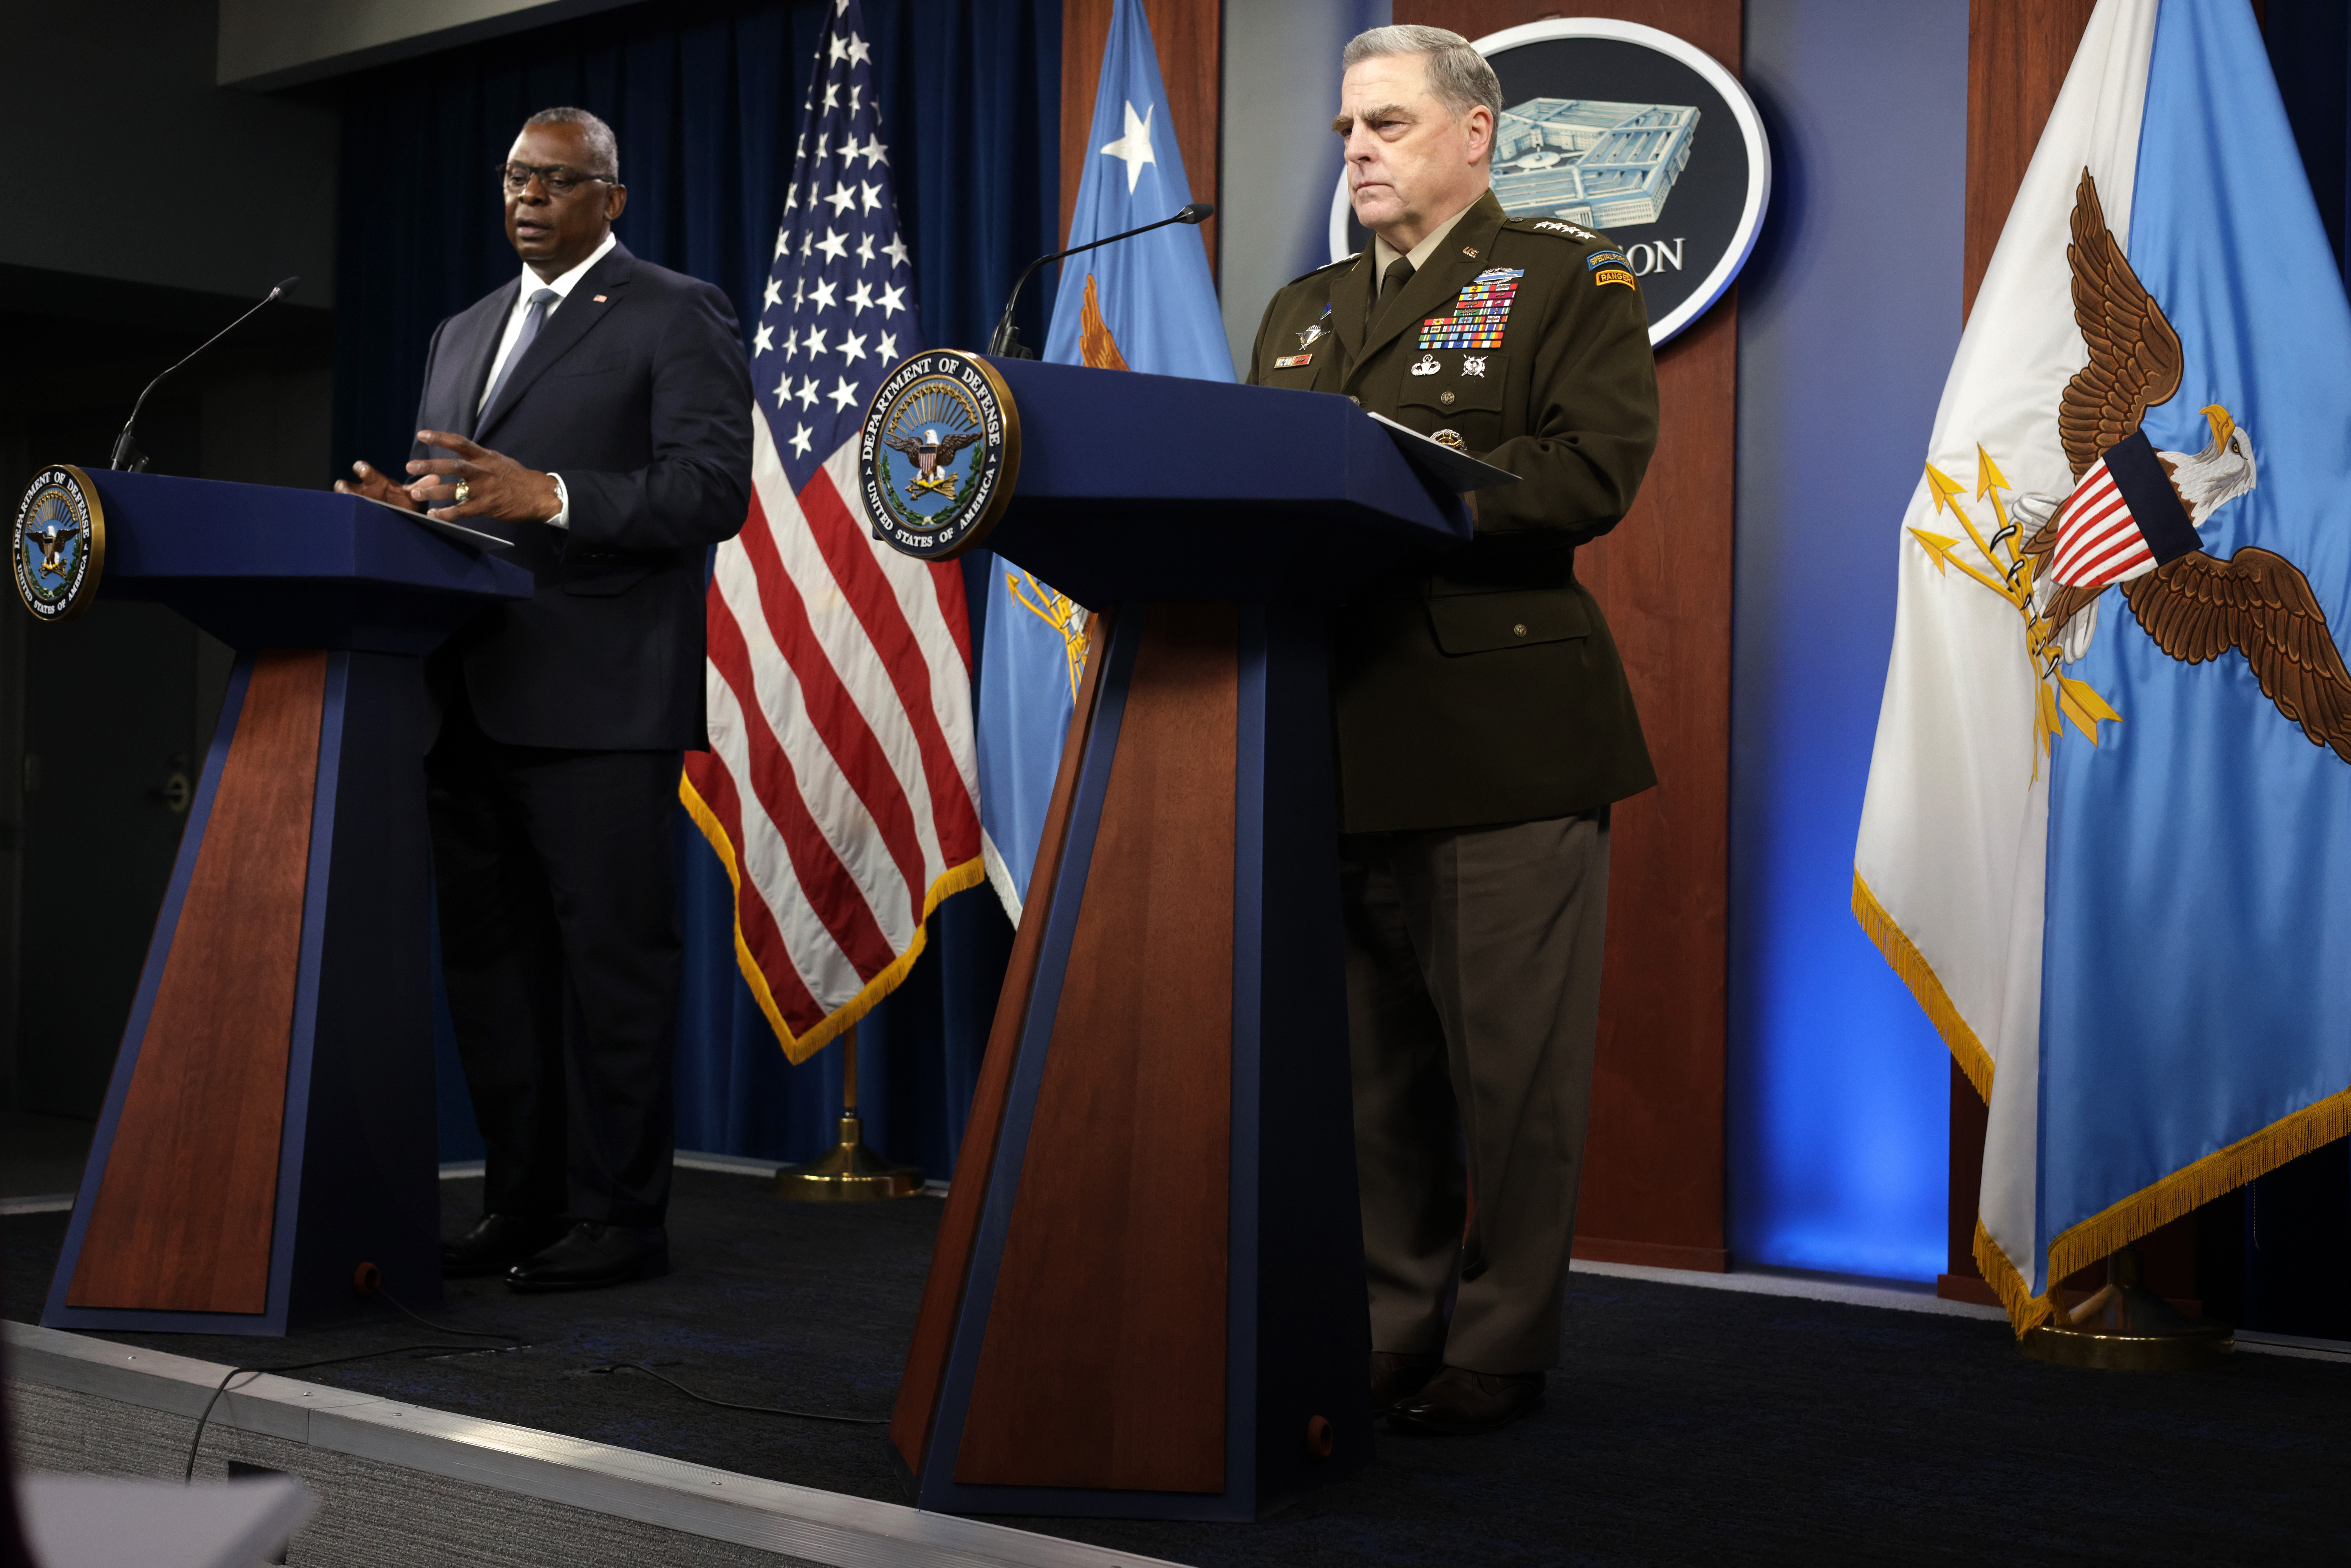 Secretary Austin And Chairman Milley Deliver Remarks On Ending Afghanistan War